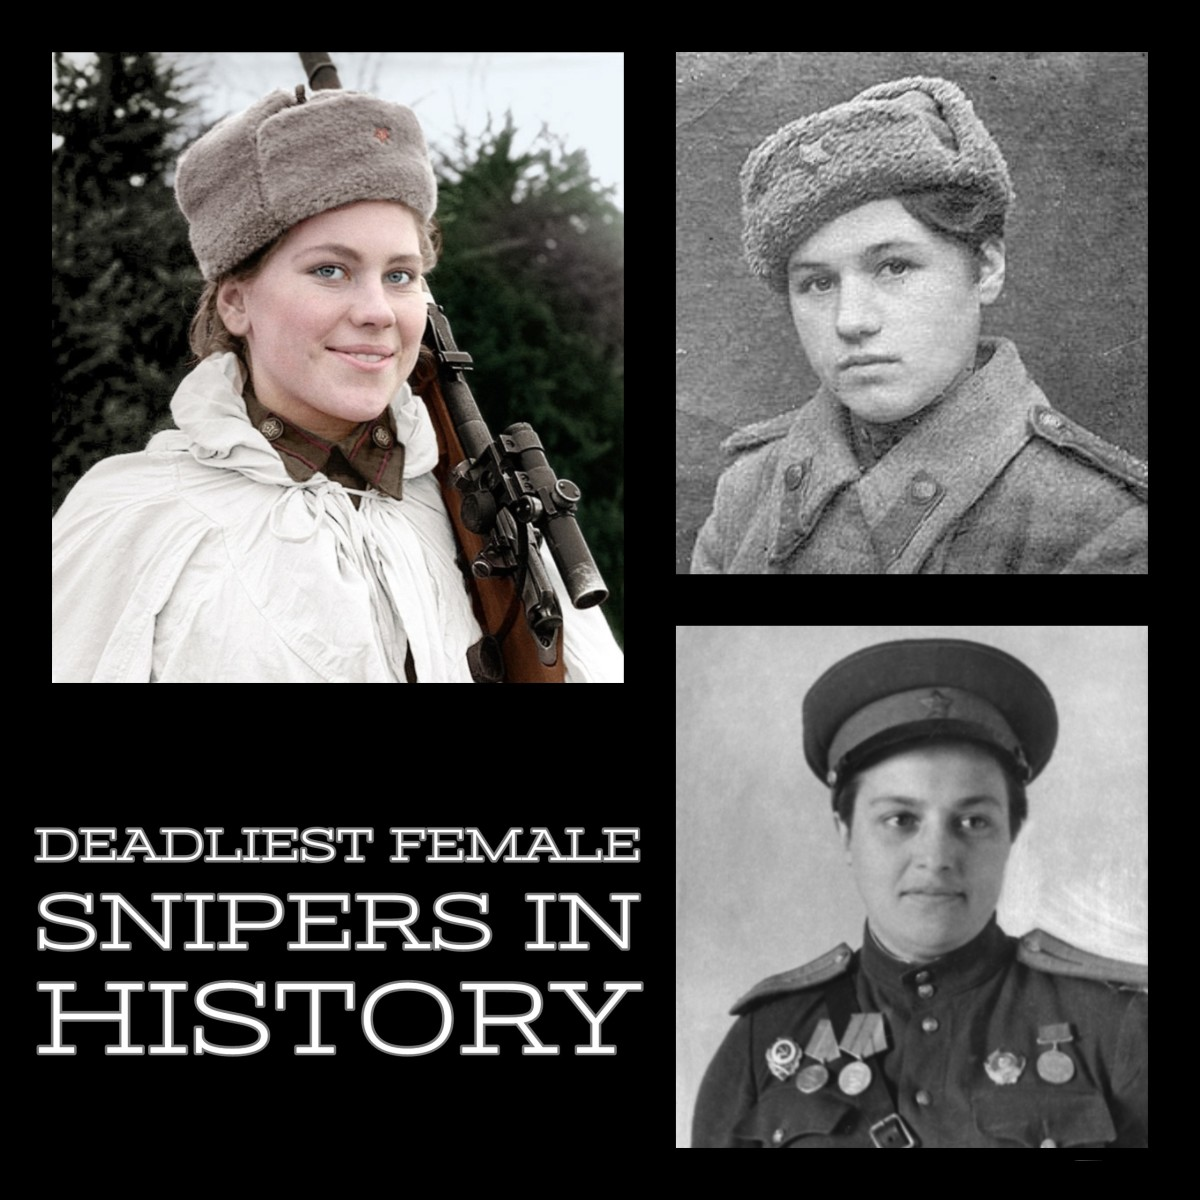 The 10 deadliest female snipers in history.